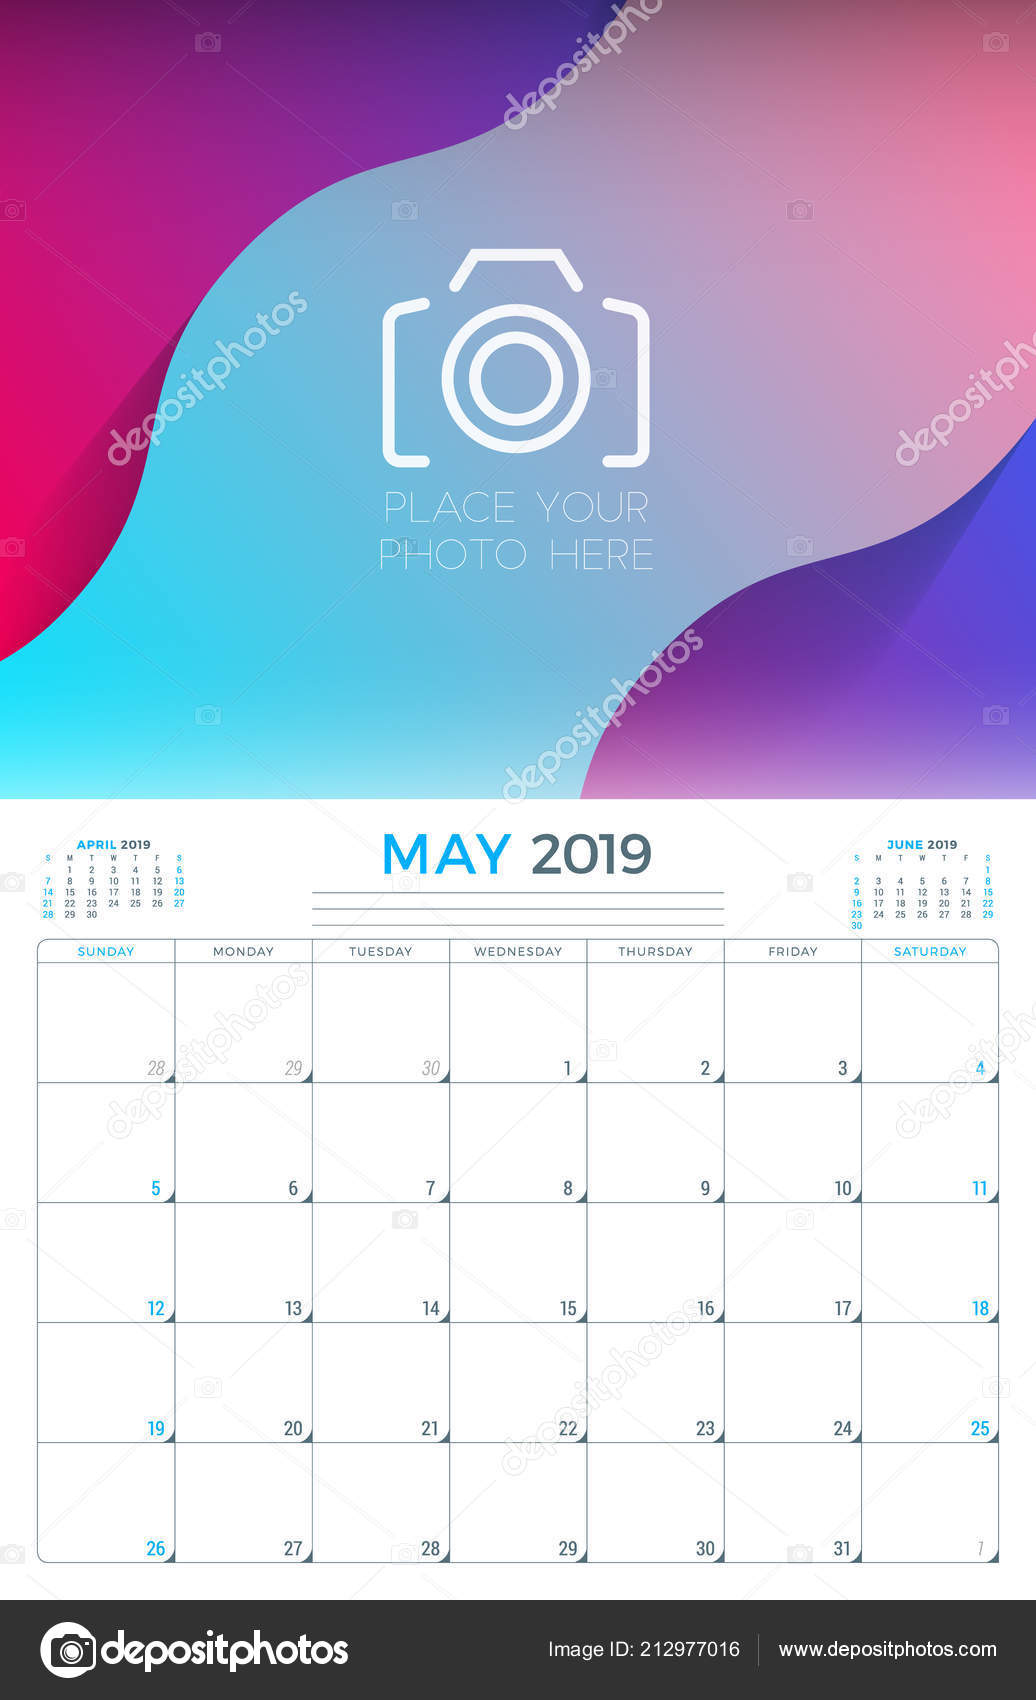 May 2019 Calendar Planner Stationery Design Template Place Photo